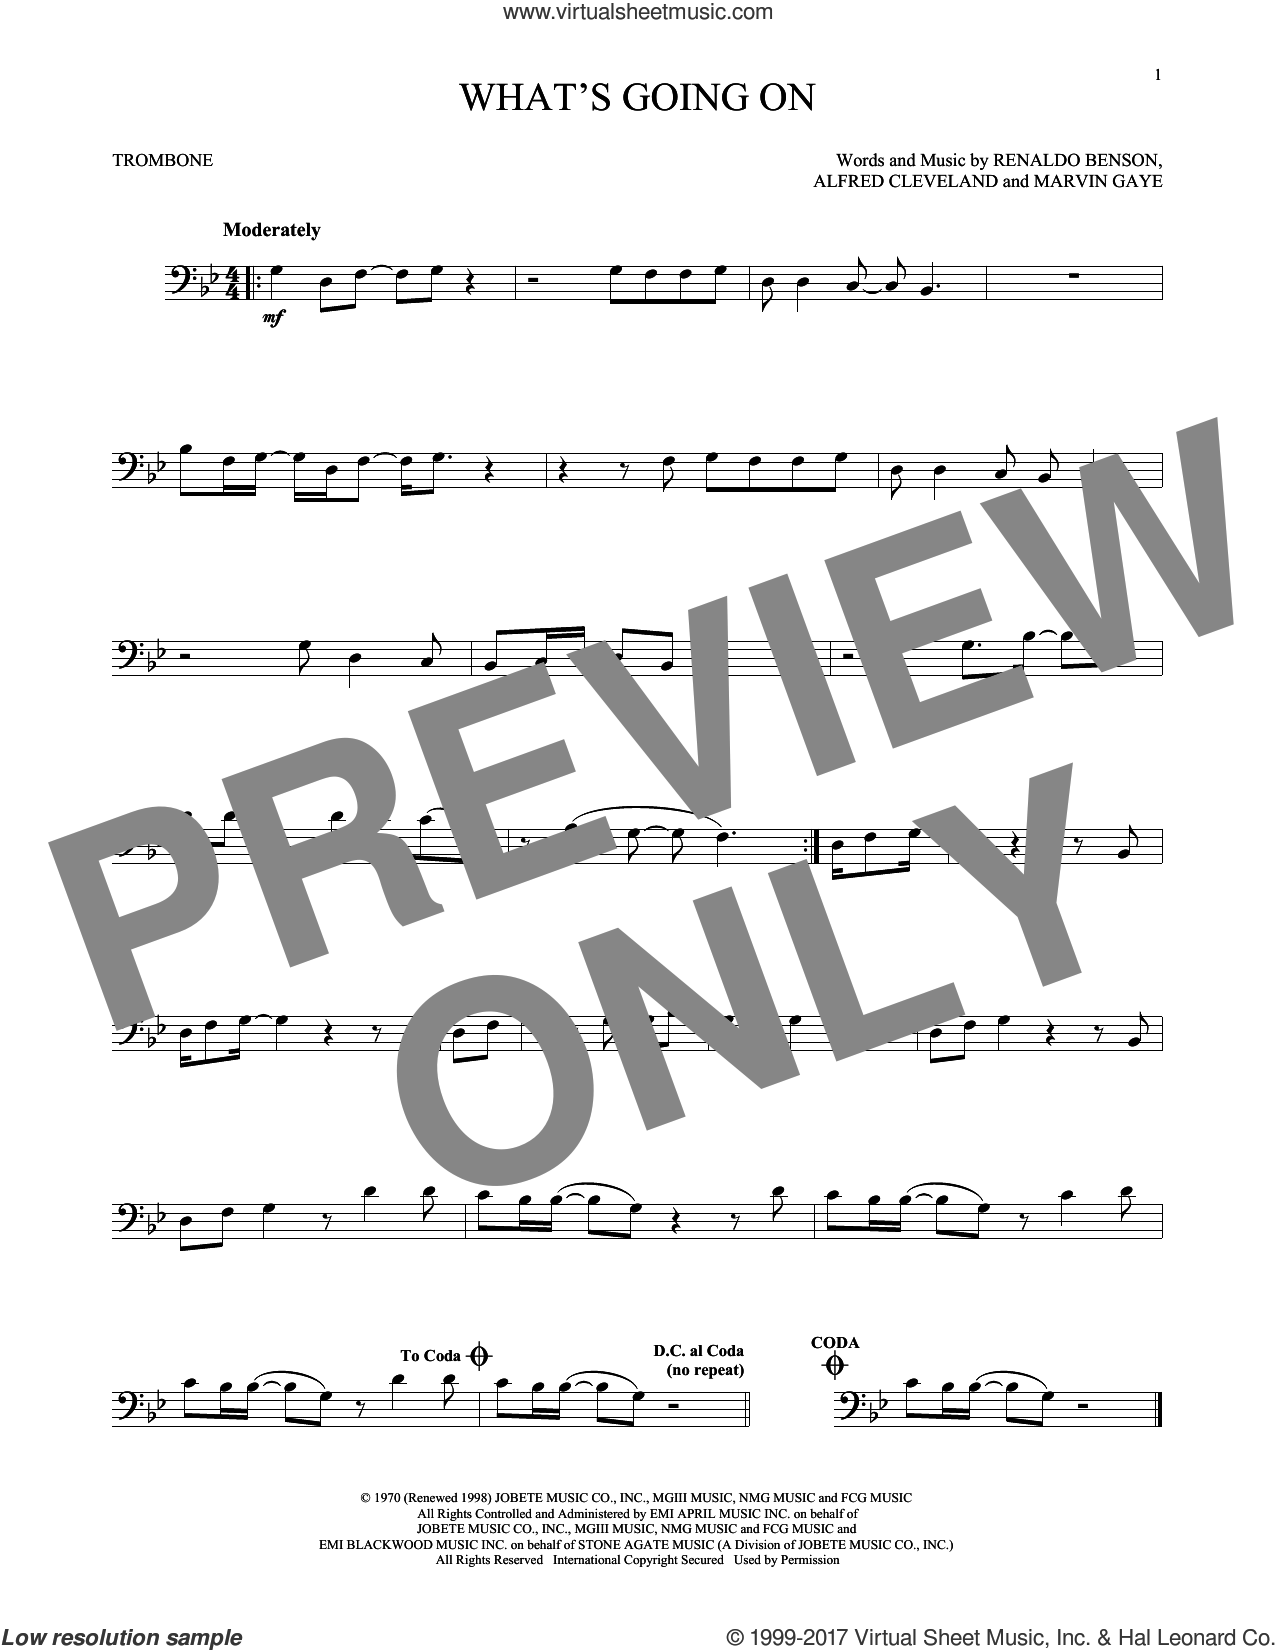 What's Going On sheet music for trombone solo by Marvin Gaye, Al Cleveland and Renaldo Benson, intermediate